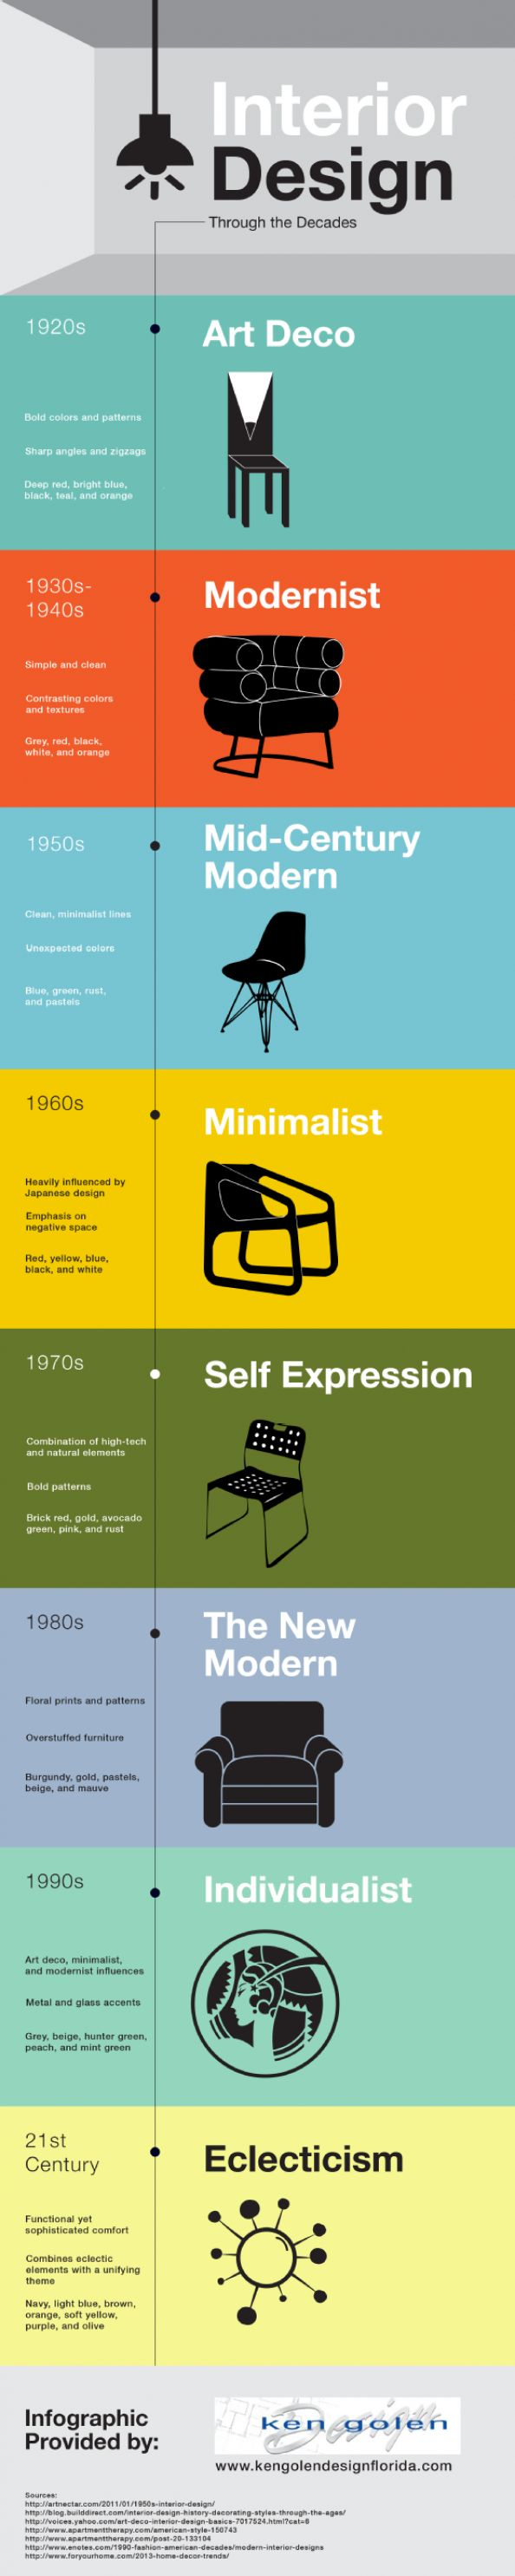 25 Best Ideas About Design History On Pinterest